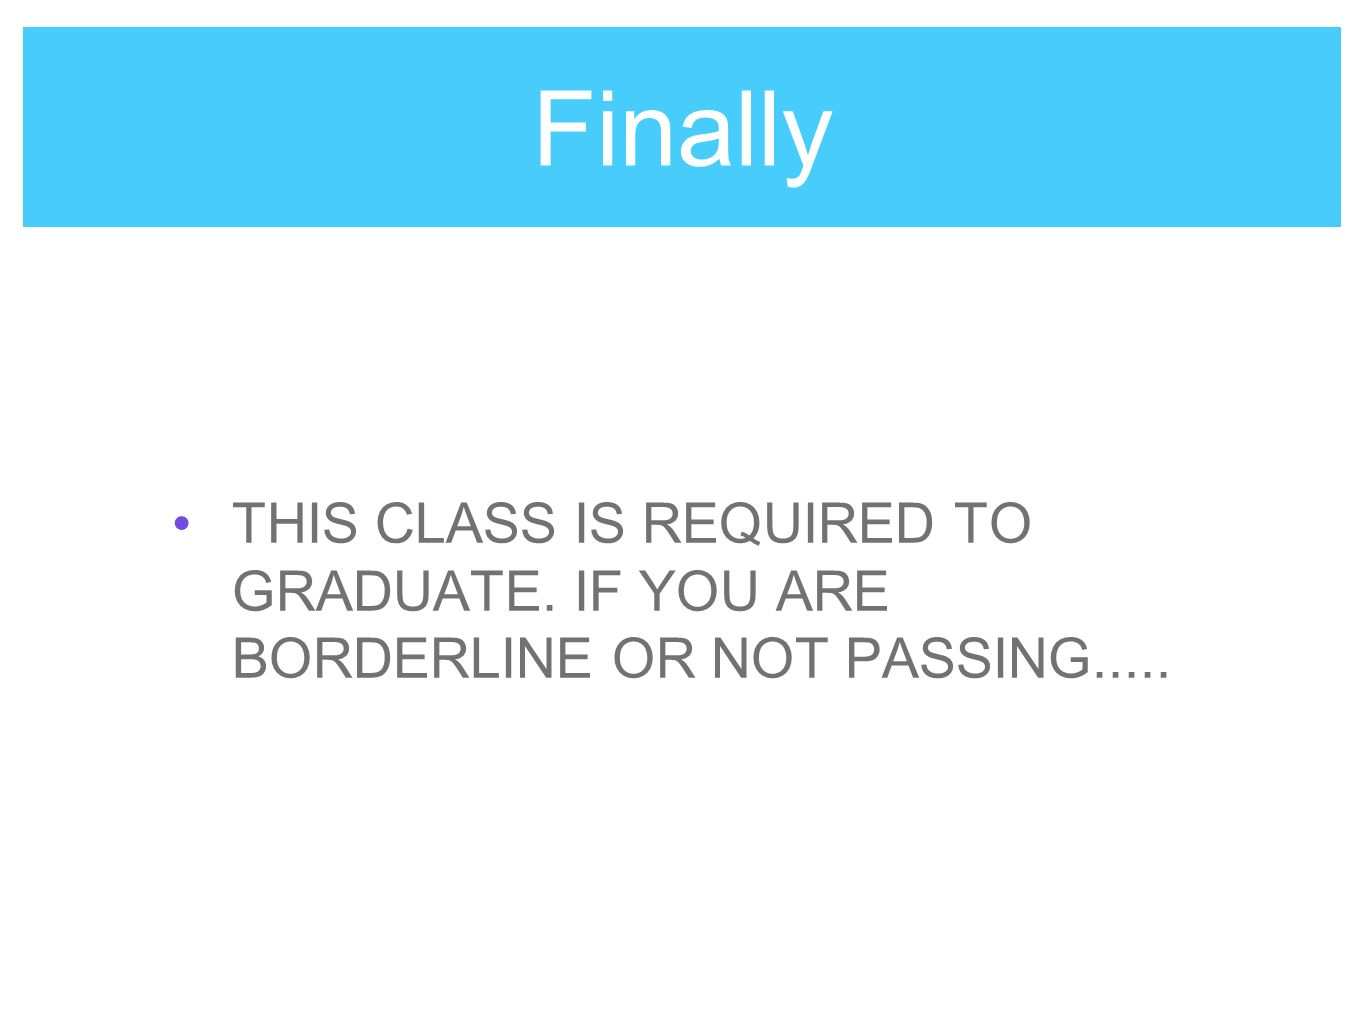 Finally THIS CLASS IS REQUIRED TO GRADUATE. IF YOU ARE BORDERLINE OR NOT PASSING.....